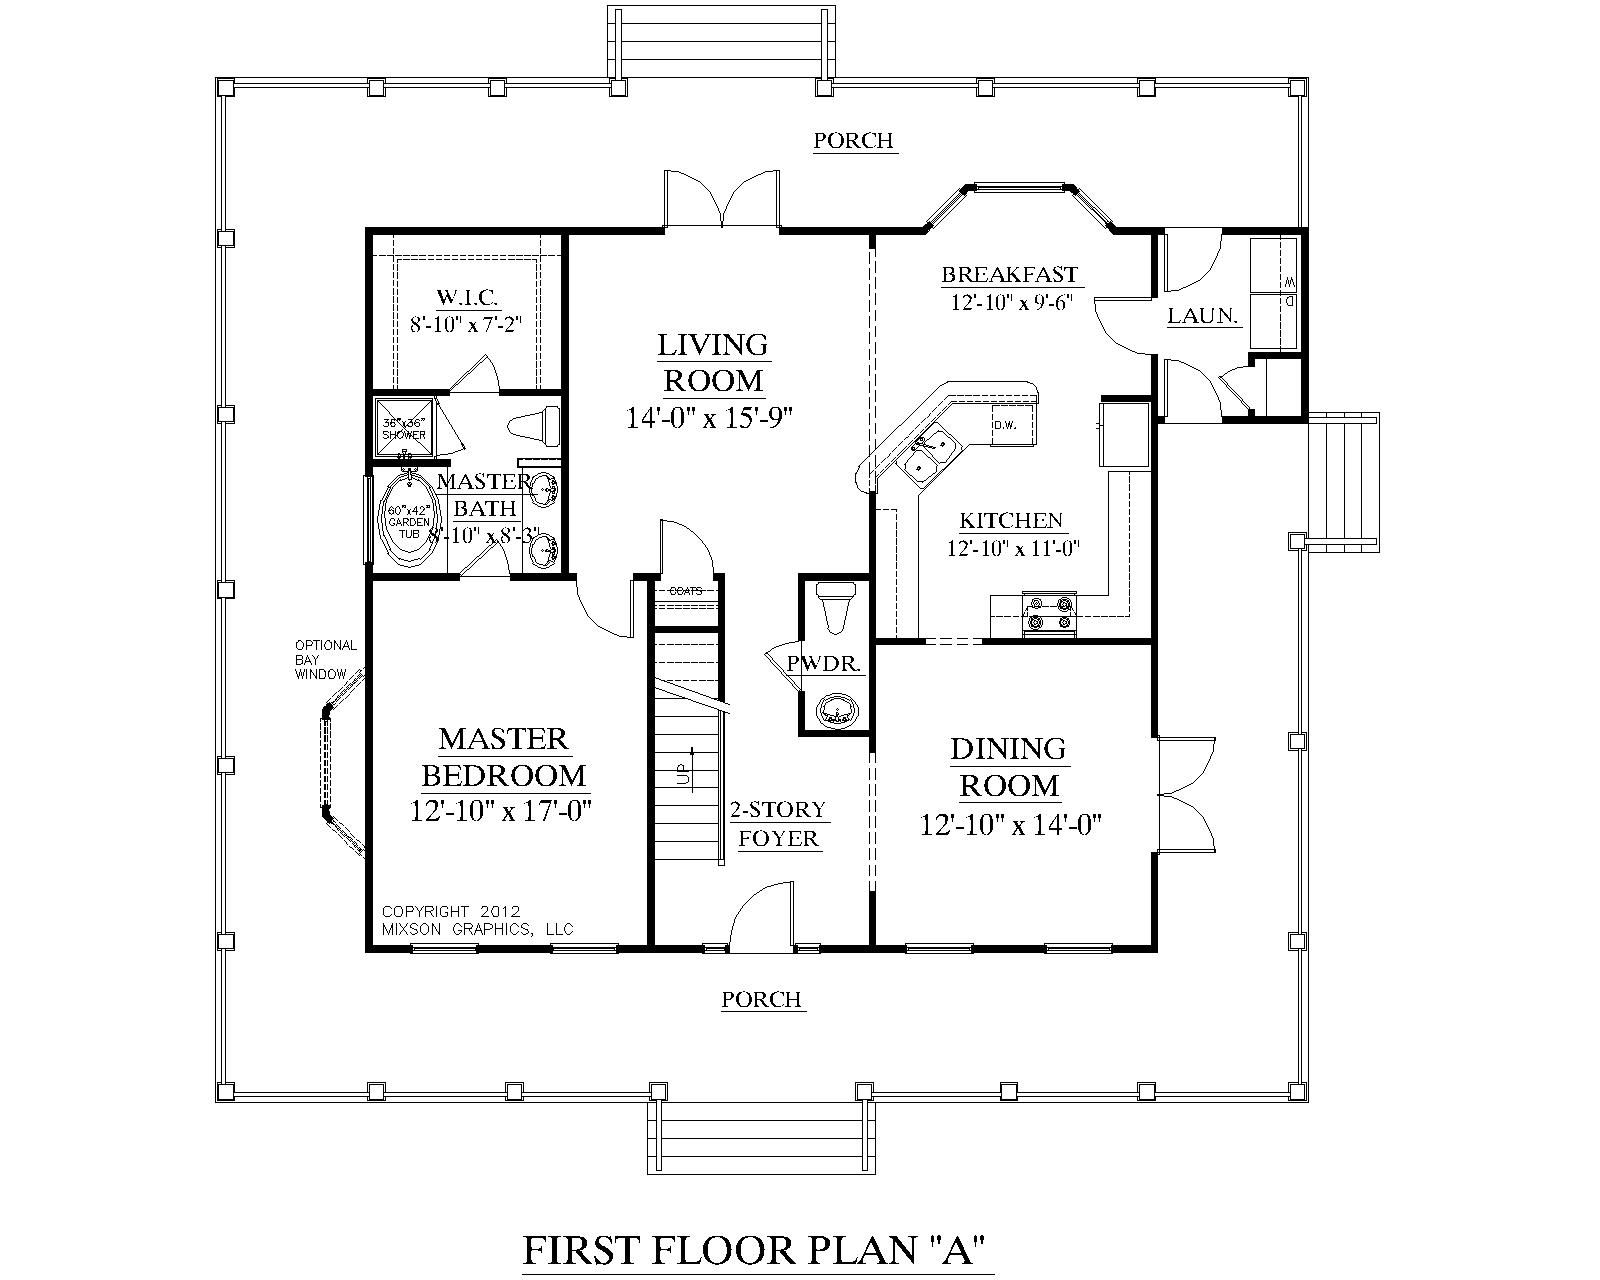 two story house plans two story house plans series php 2014005 4 bedroom house designs perth double storey apg homes 2 story